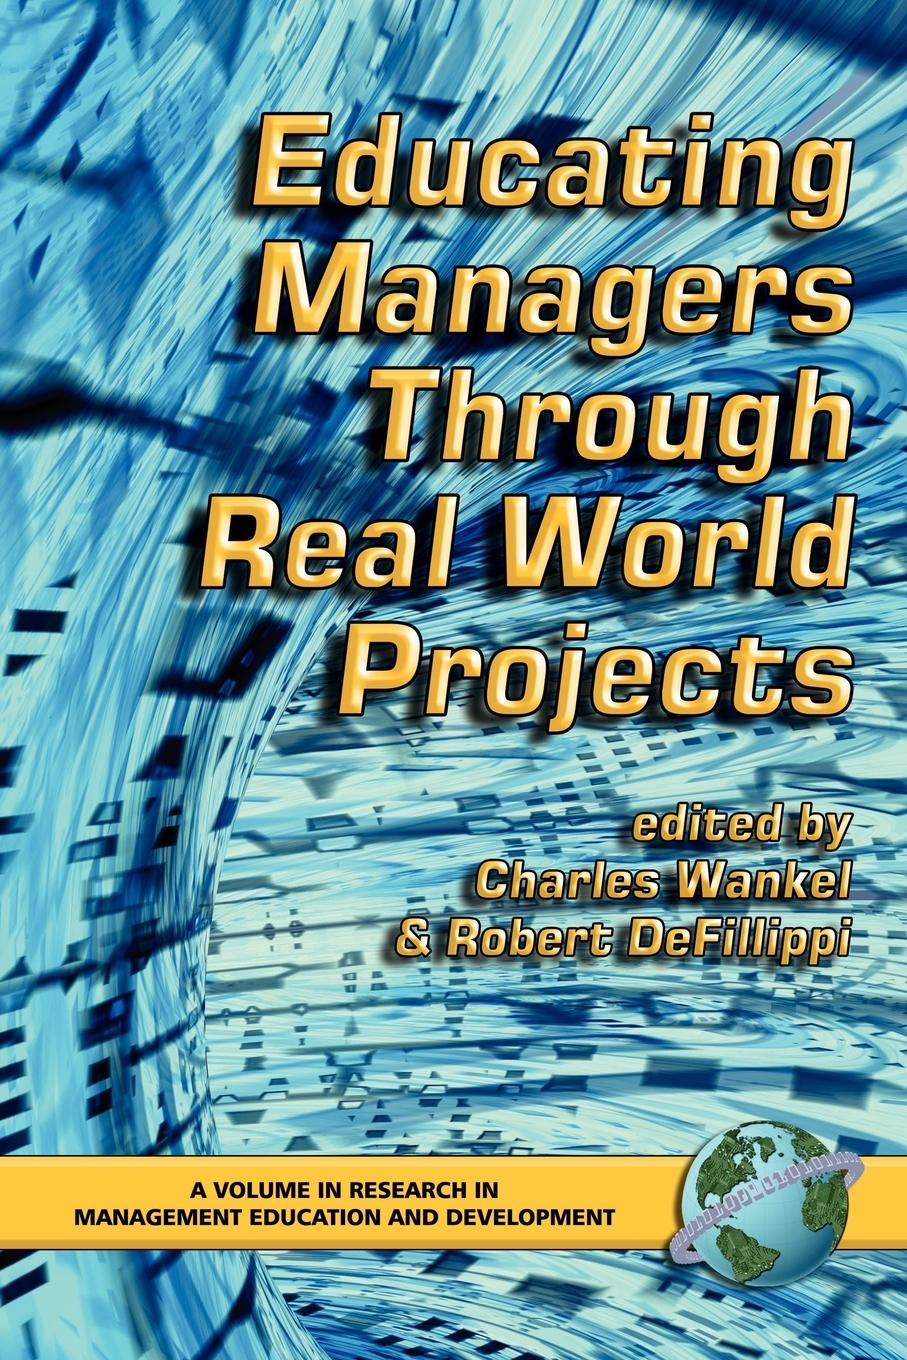 Educating Managers Through Real World Projects (PB) reflective education